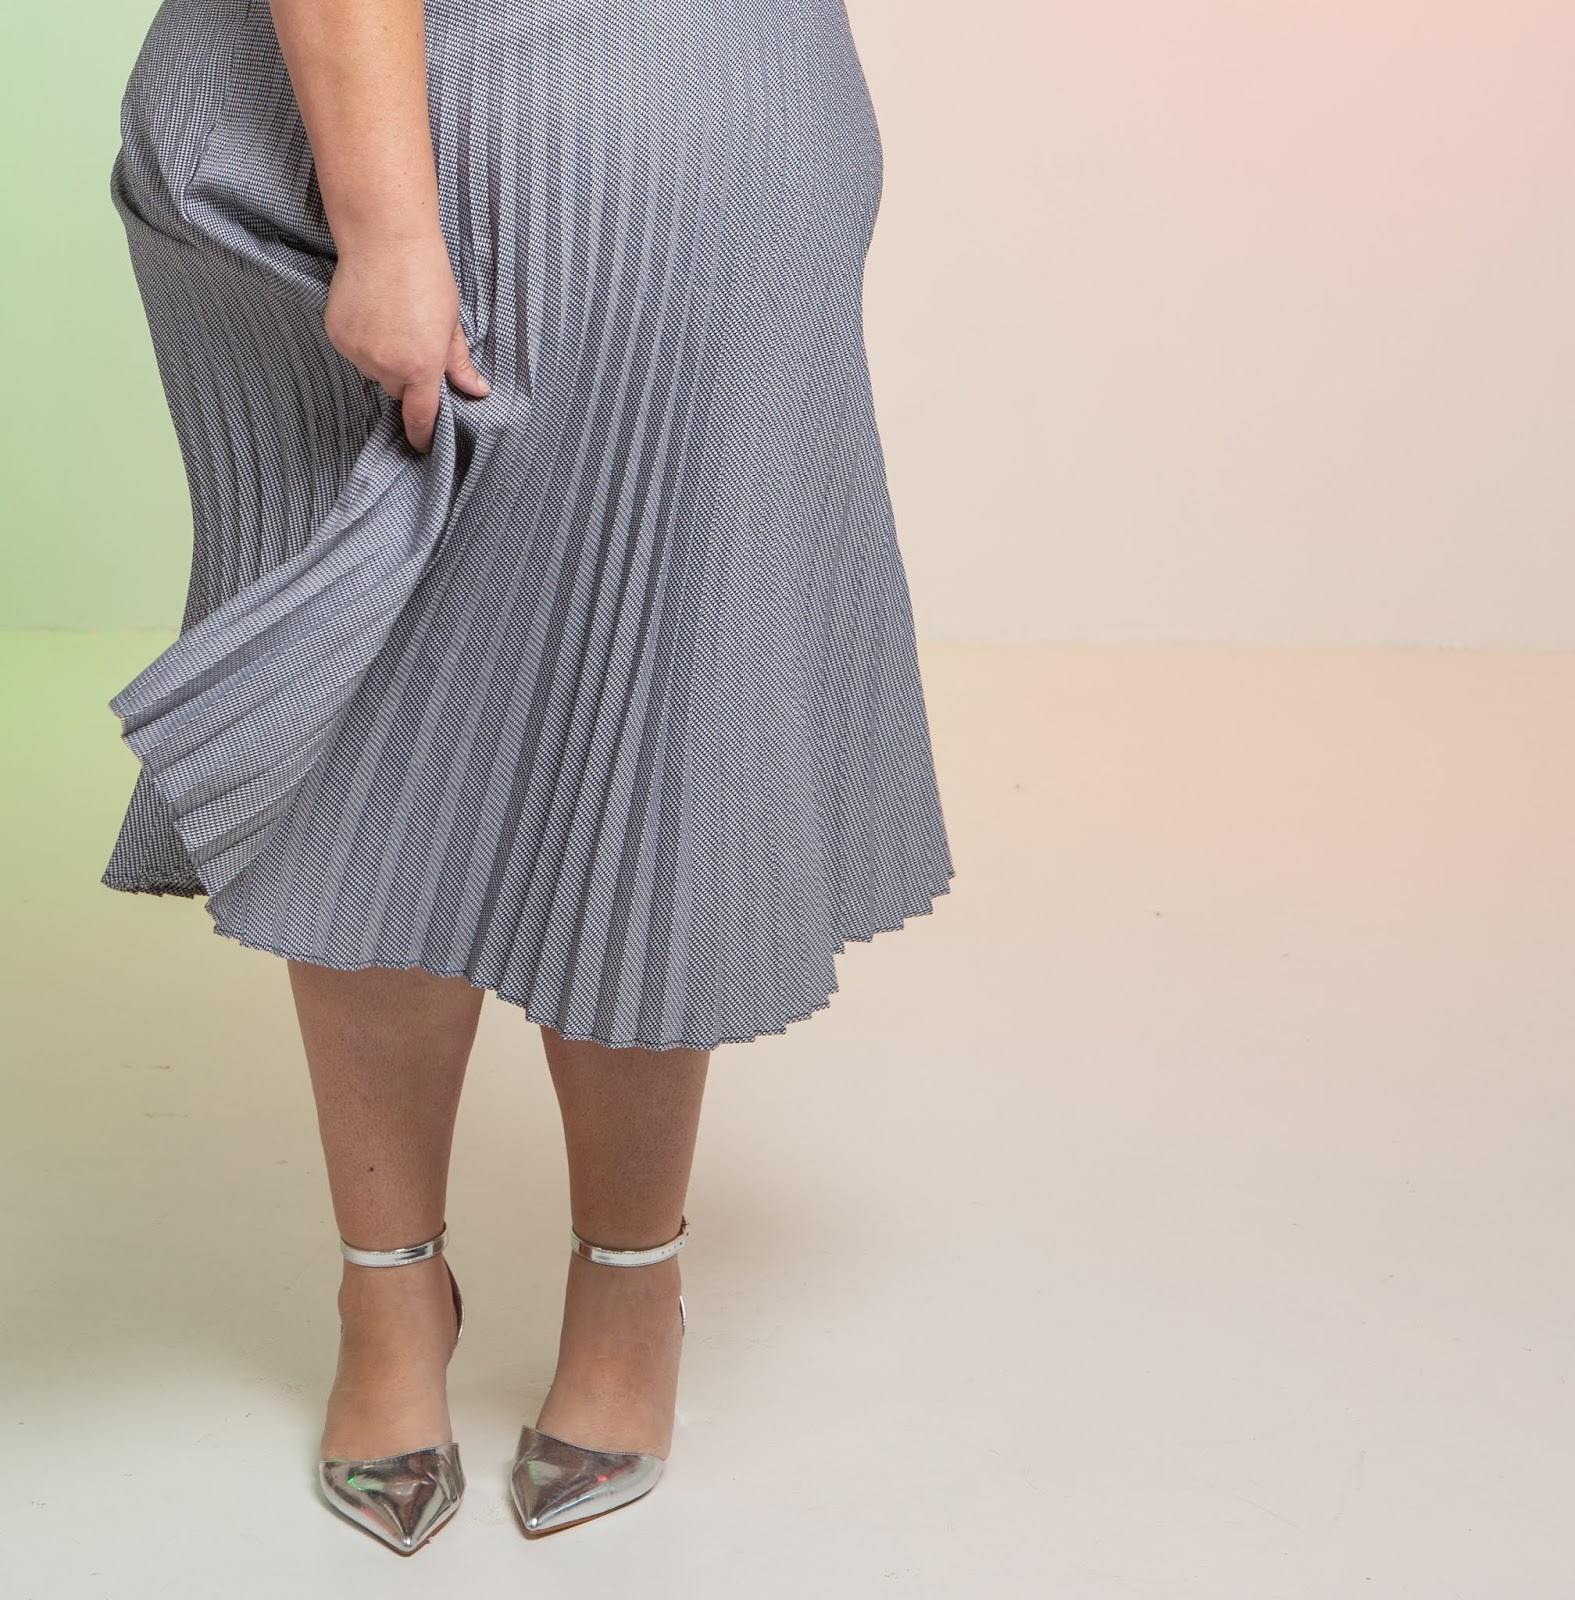 8e74060ac Comfy & Stylish Plus Size Outfits from Christopher & Bank - Life and ...